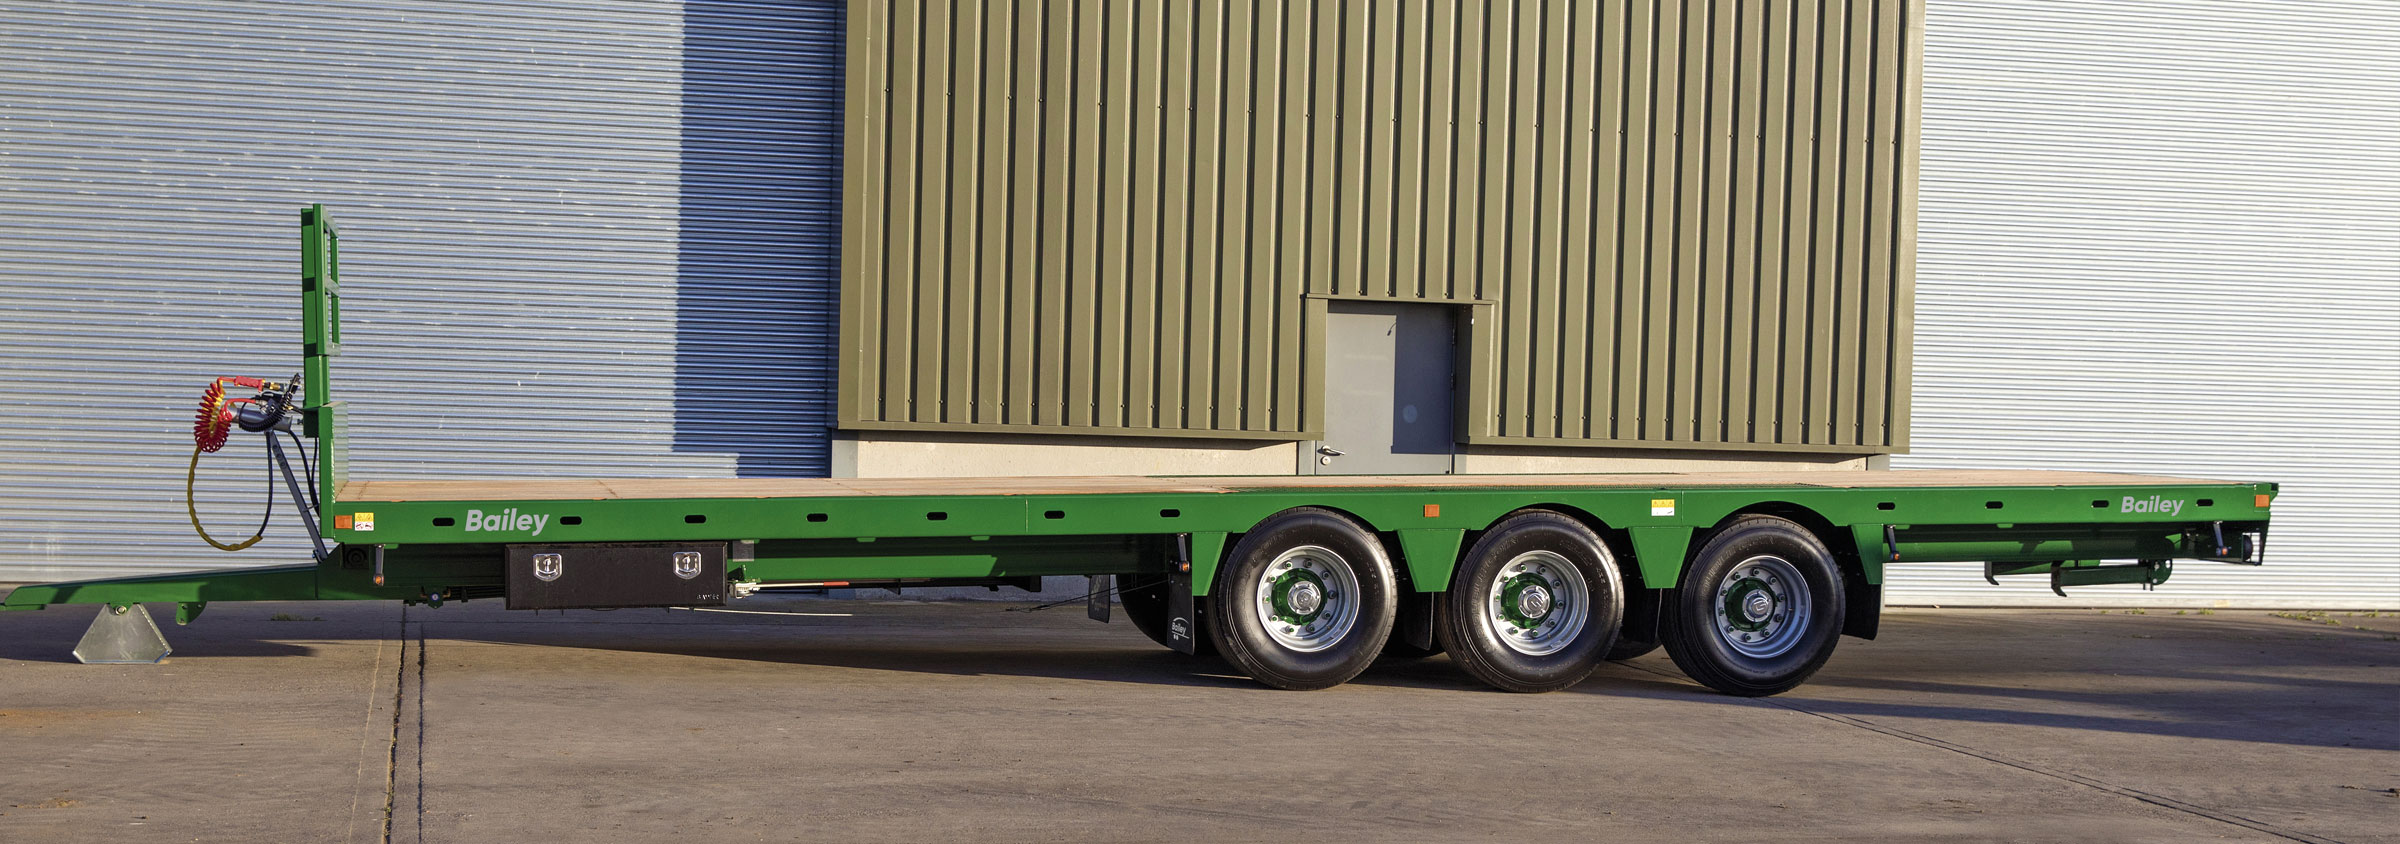 Flat Deck Low Loader Trailers